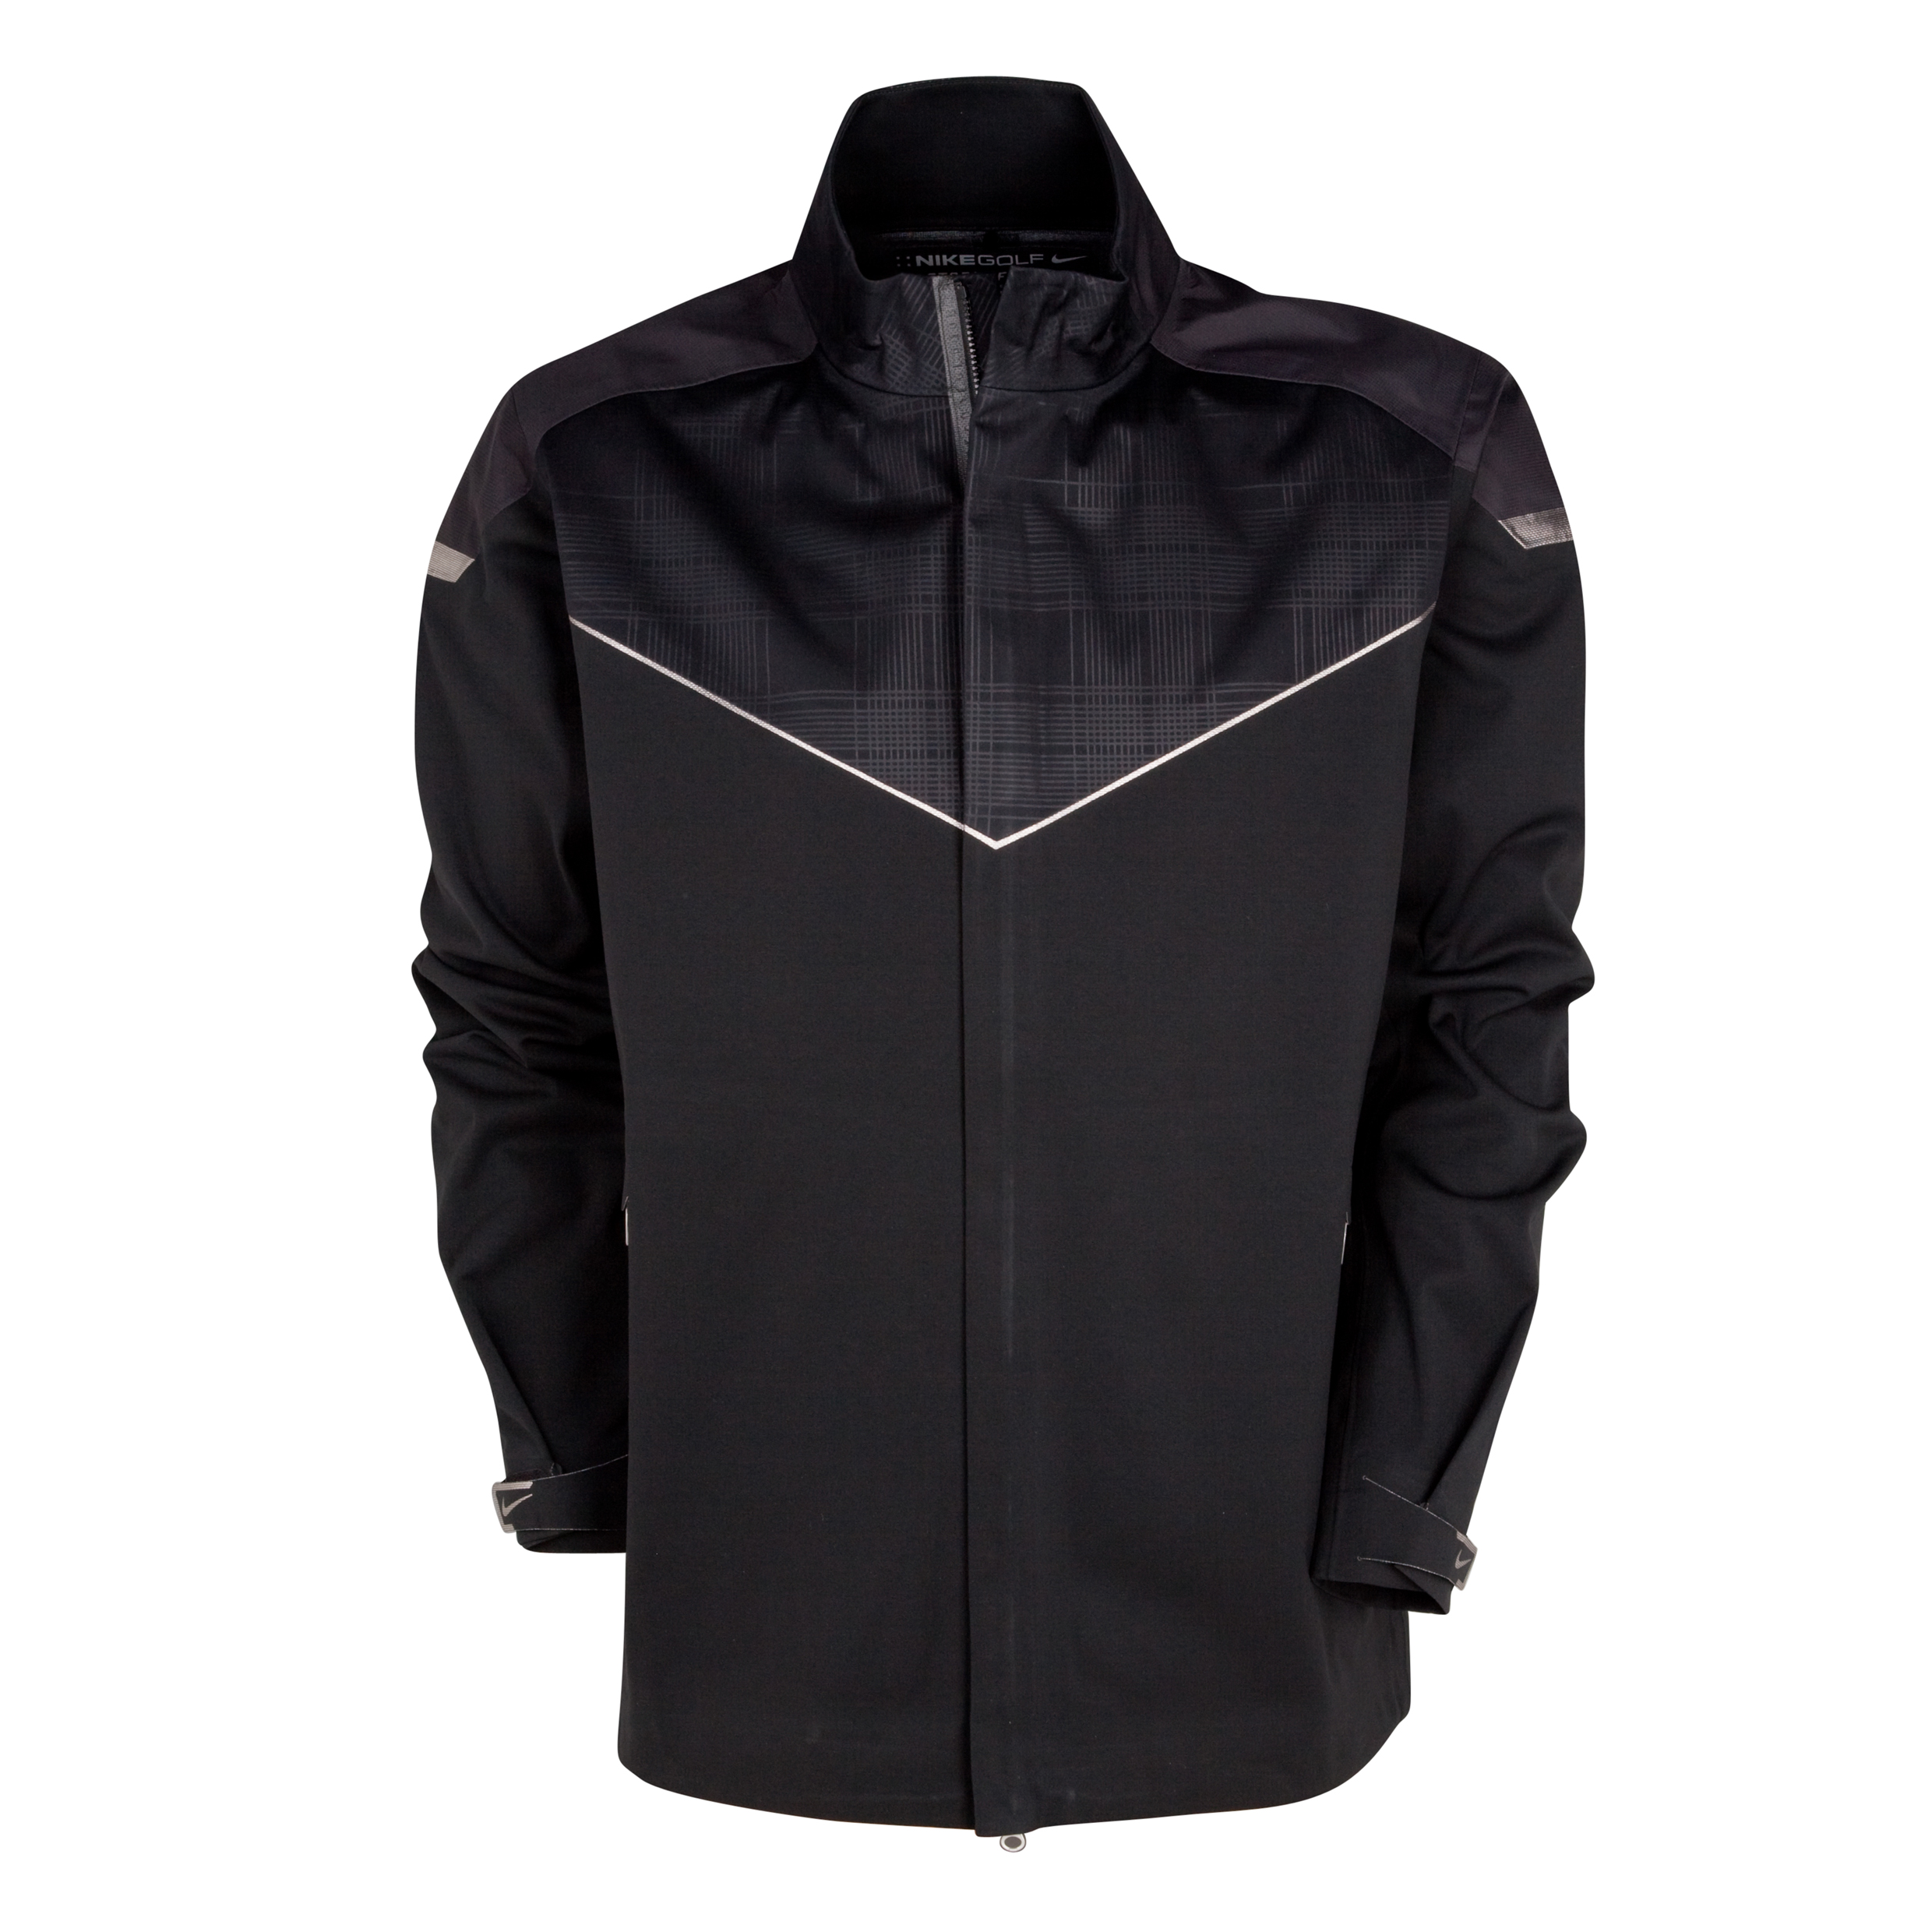 Nike StormFIT Elite Meninchs Golf Jacket